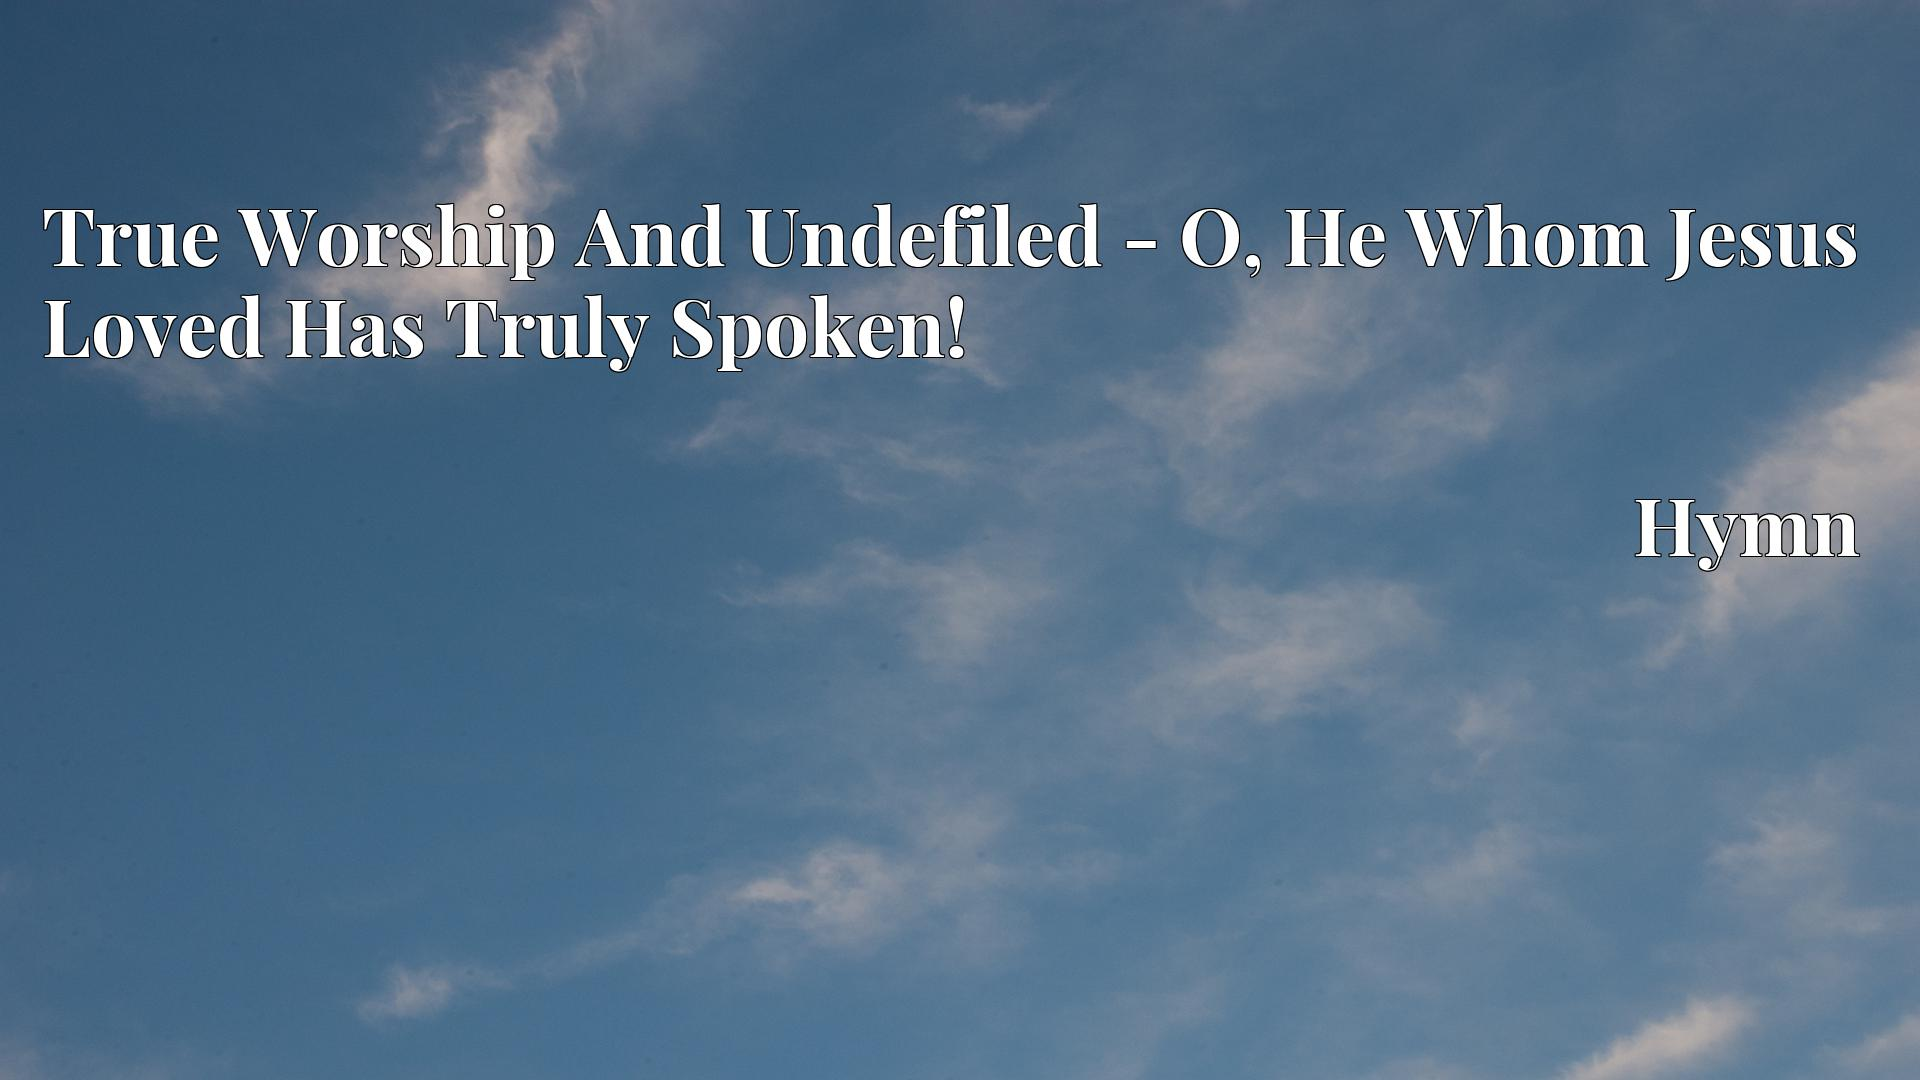 True Worship And Undefiled - O, He Whom Jesus Loved Has Truly Spoken! - Hymn